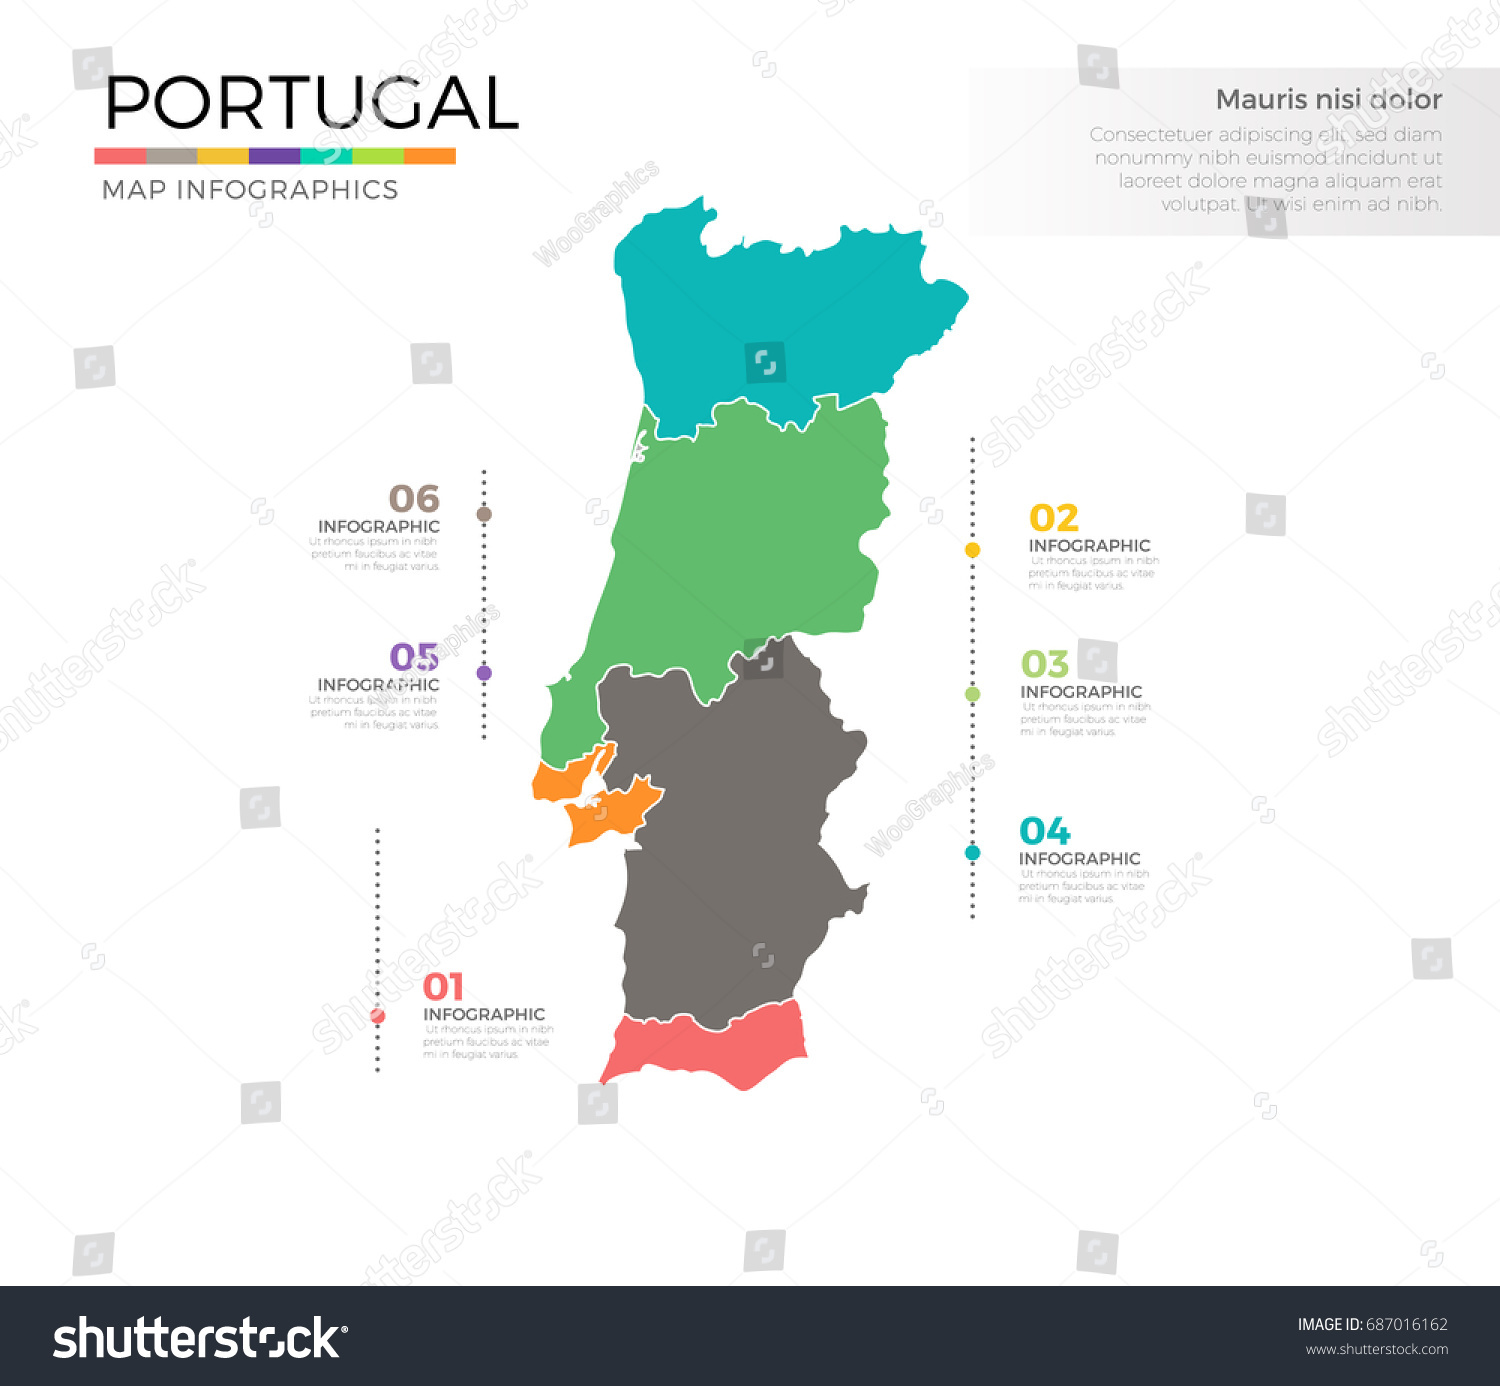 Portugal Country Map Infographic Colored Vector Stock Vector - Portugal map regions